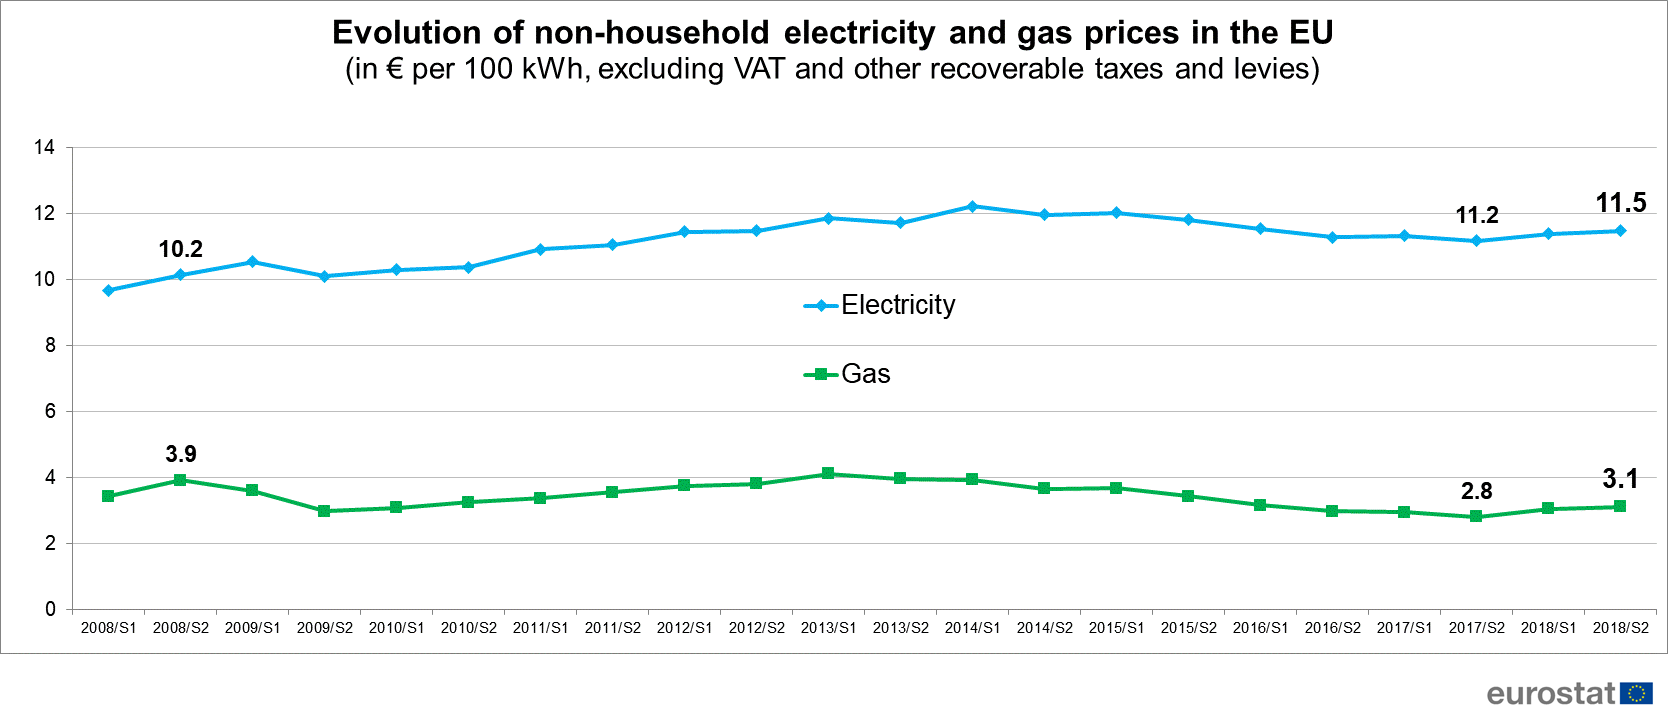 non-households energy prices in the EU